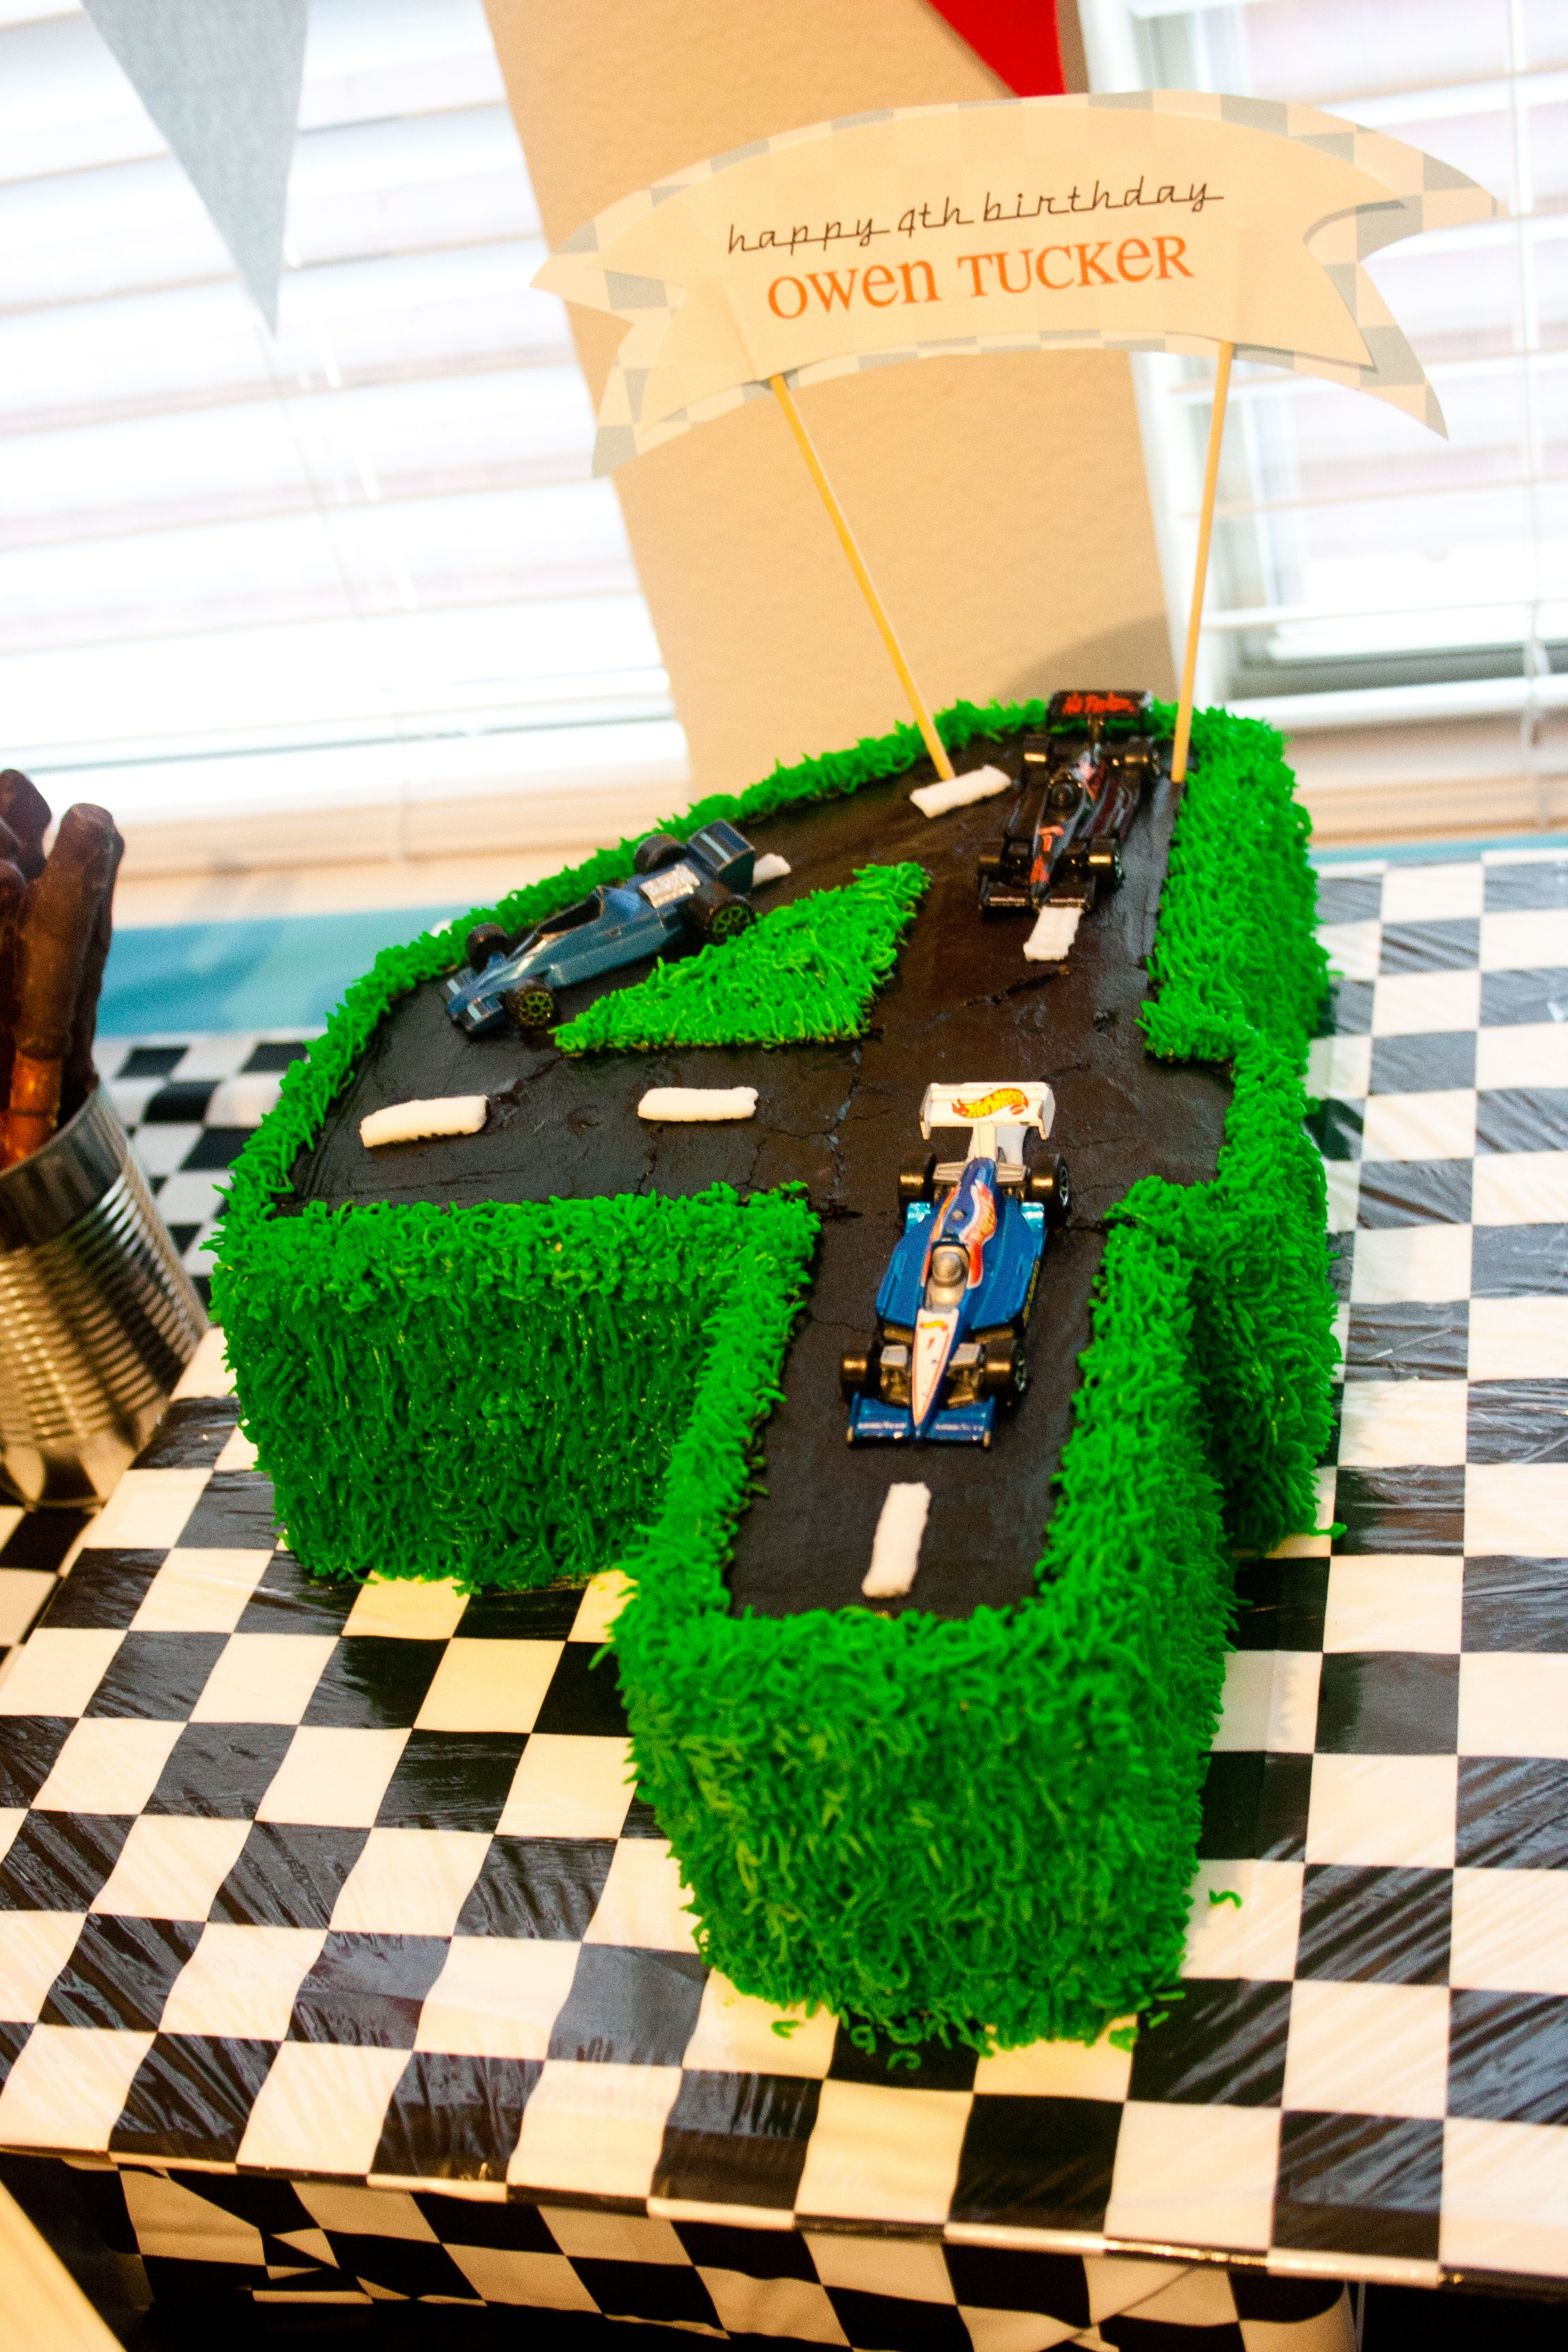 Race car cake learn how to create your own amazing cakes www race car cake learn how to create your own amazing cakes mycakedecorating baditri Choice Image